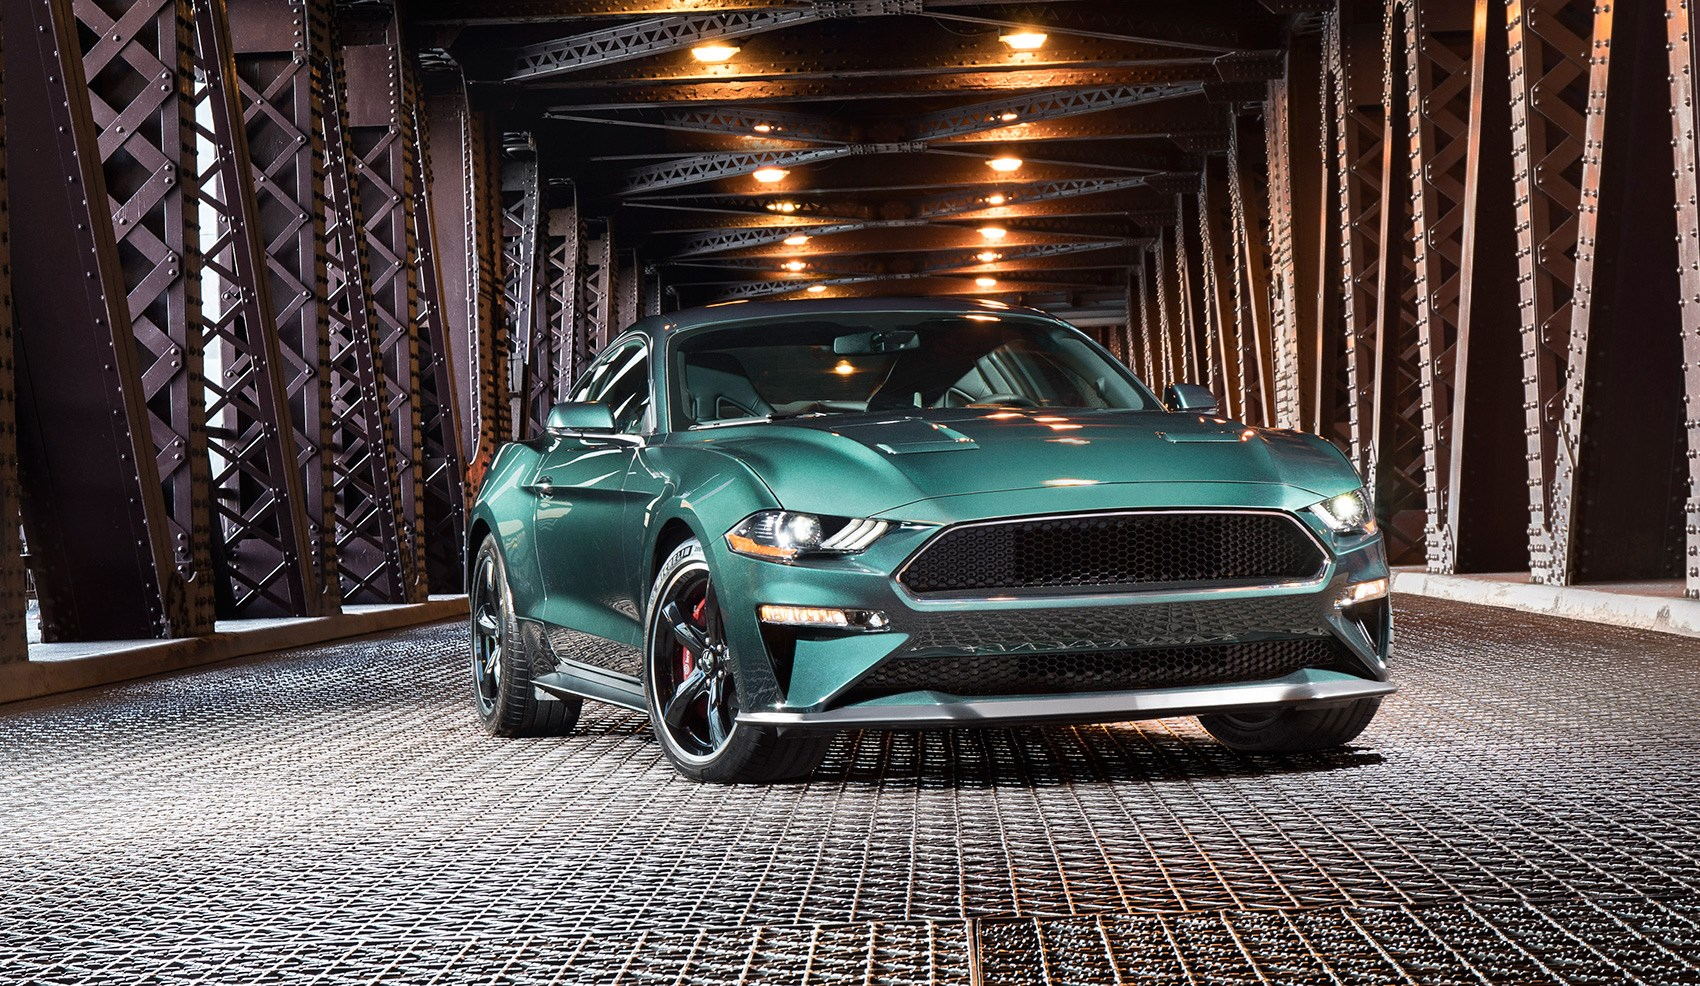 Designed to celebrate half a century since bullitt the new 2019 ford mustang